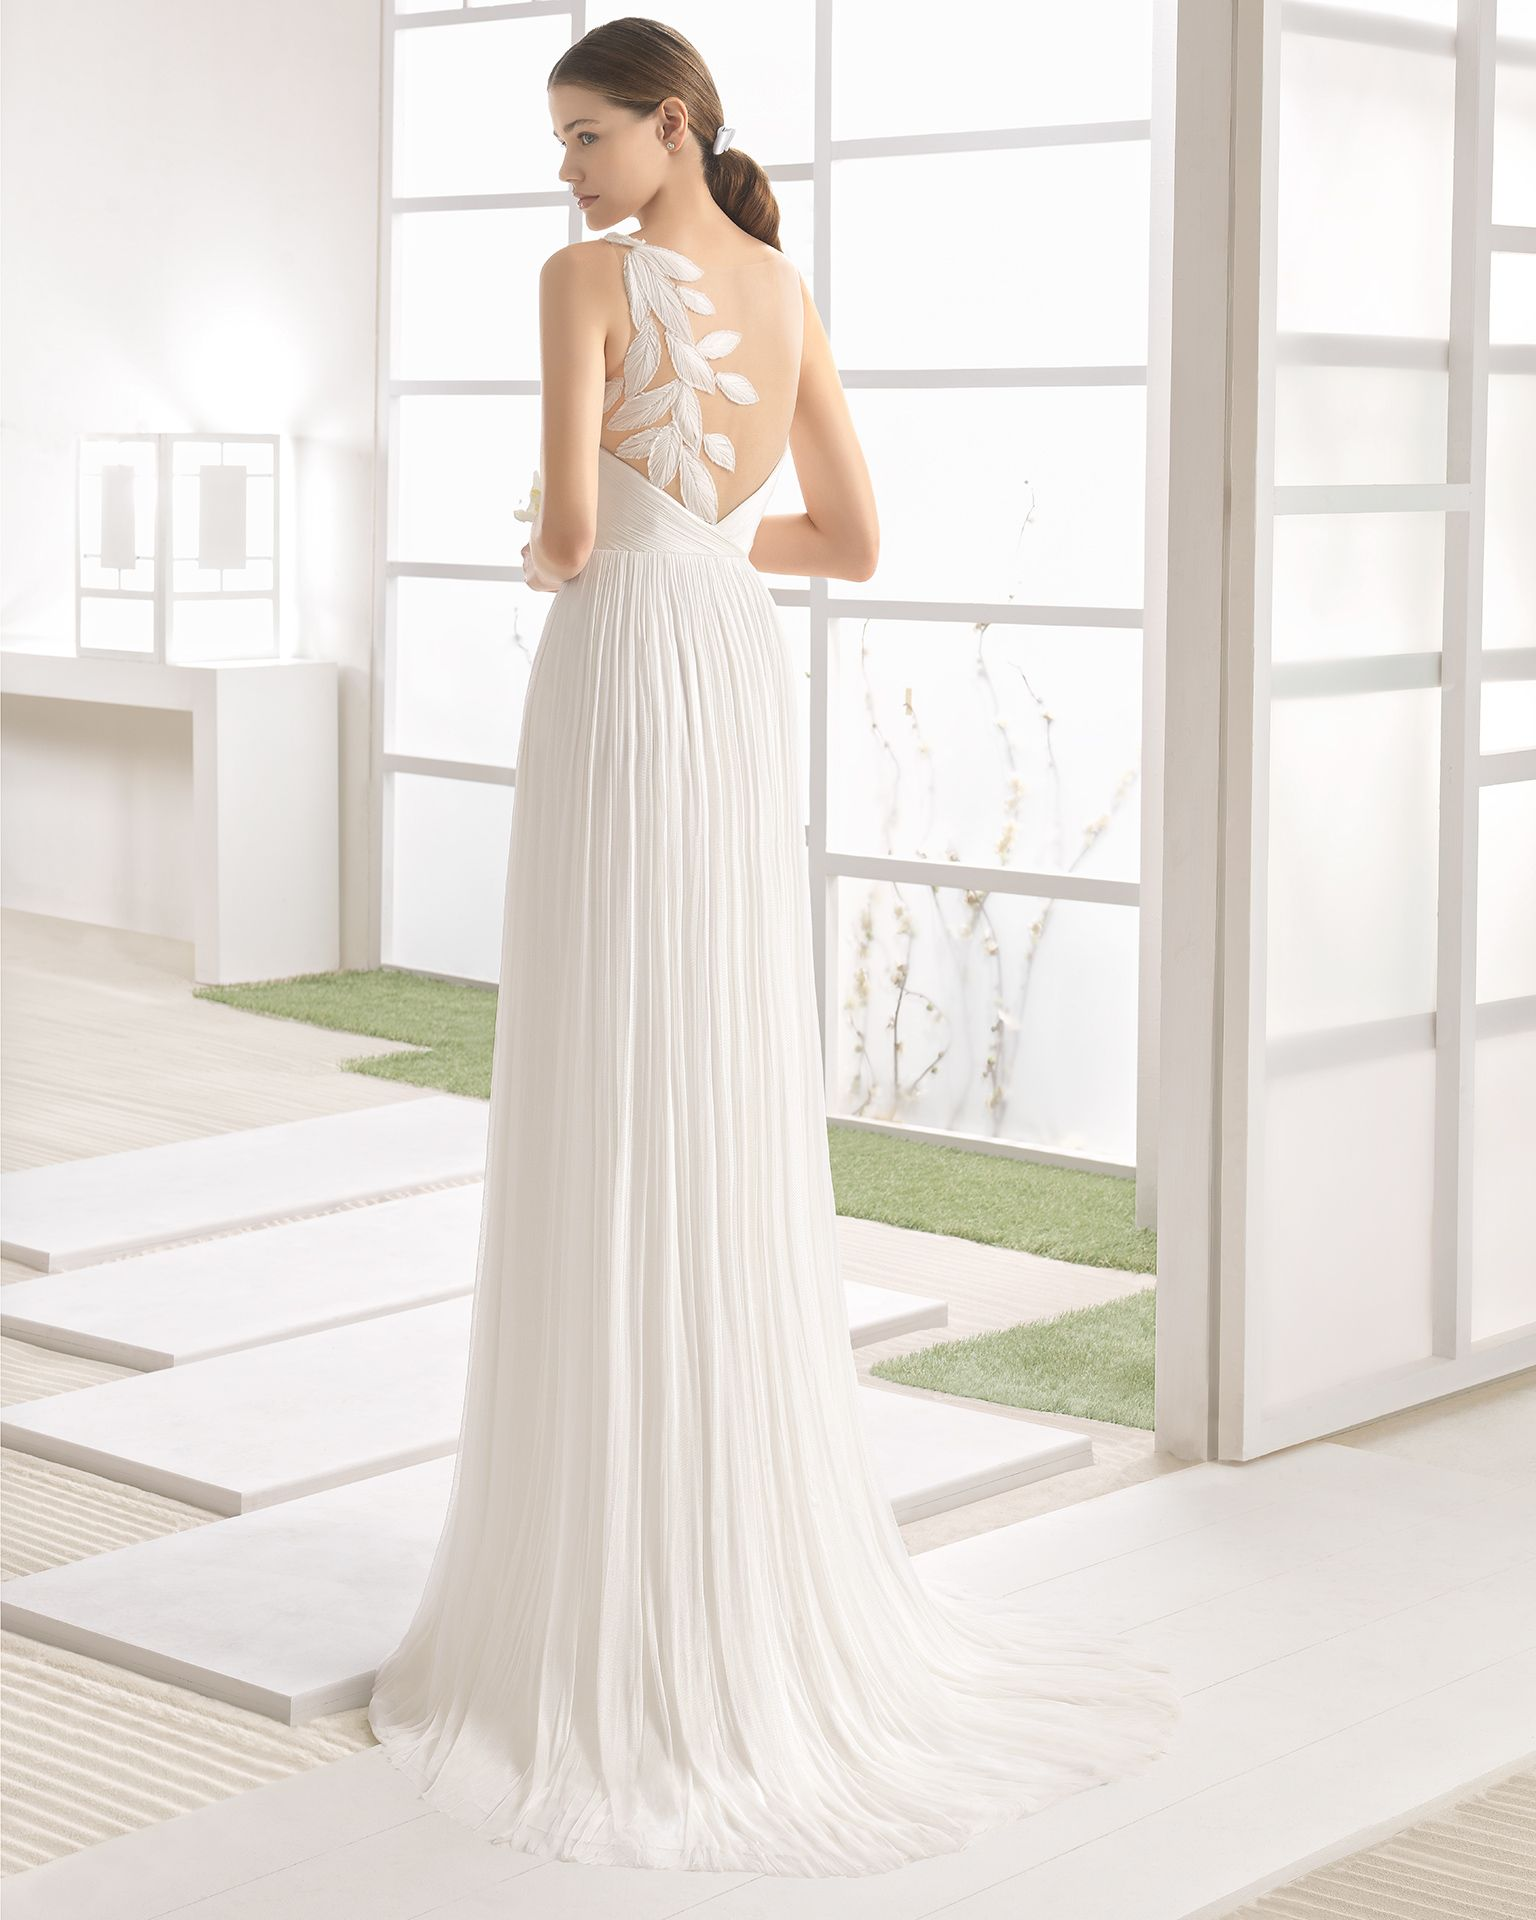 low cost wedding dresses in atlantga%0A Wedding dress